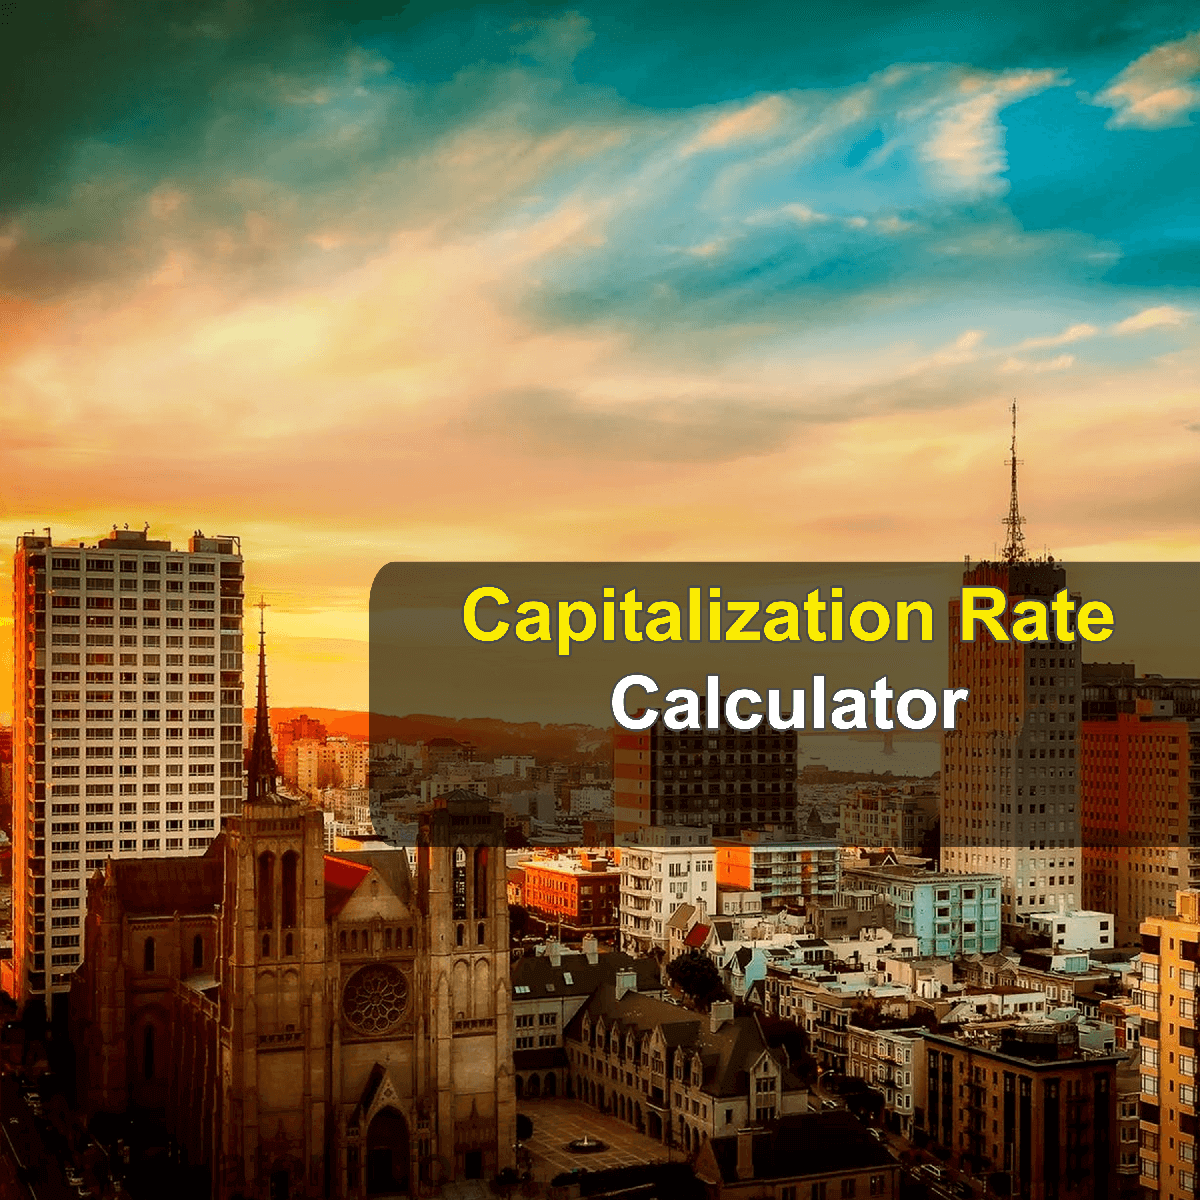 Capitalization Rate Calculator. This image provides details of how to calculate the capitalization rate using a calculator and notepad. By using the cap rate formula, the Cap Rate Calculator provides a true calculation of the profitability of real estate investments.